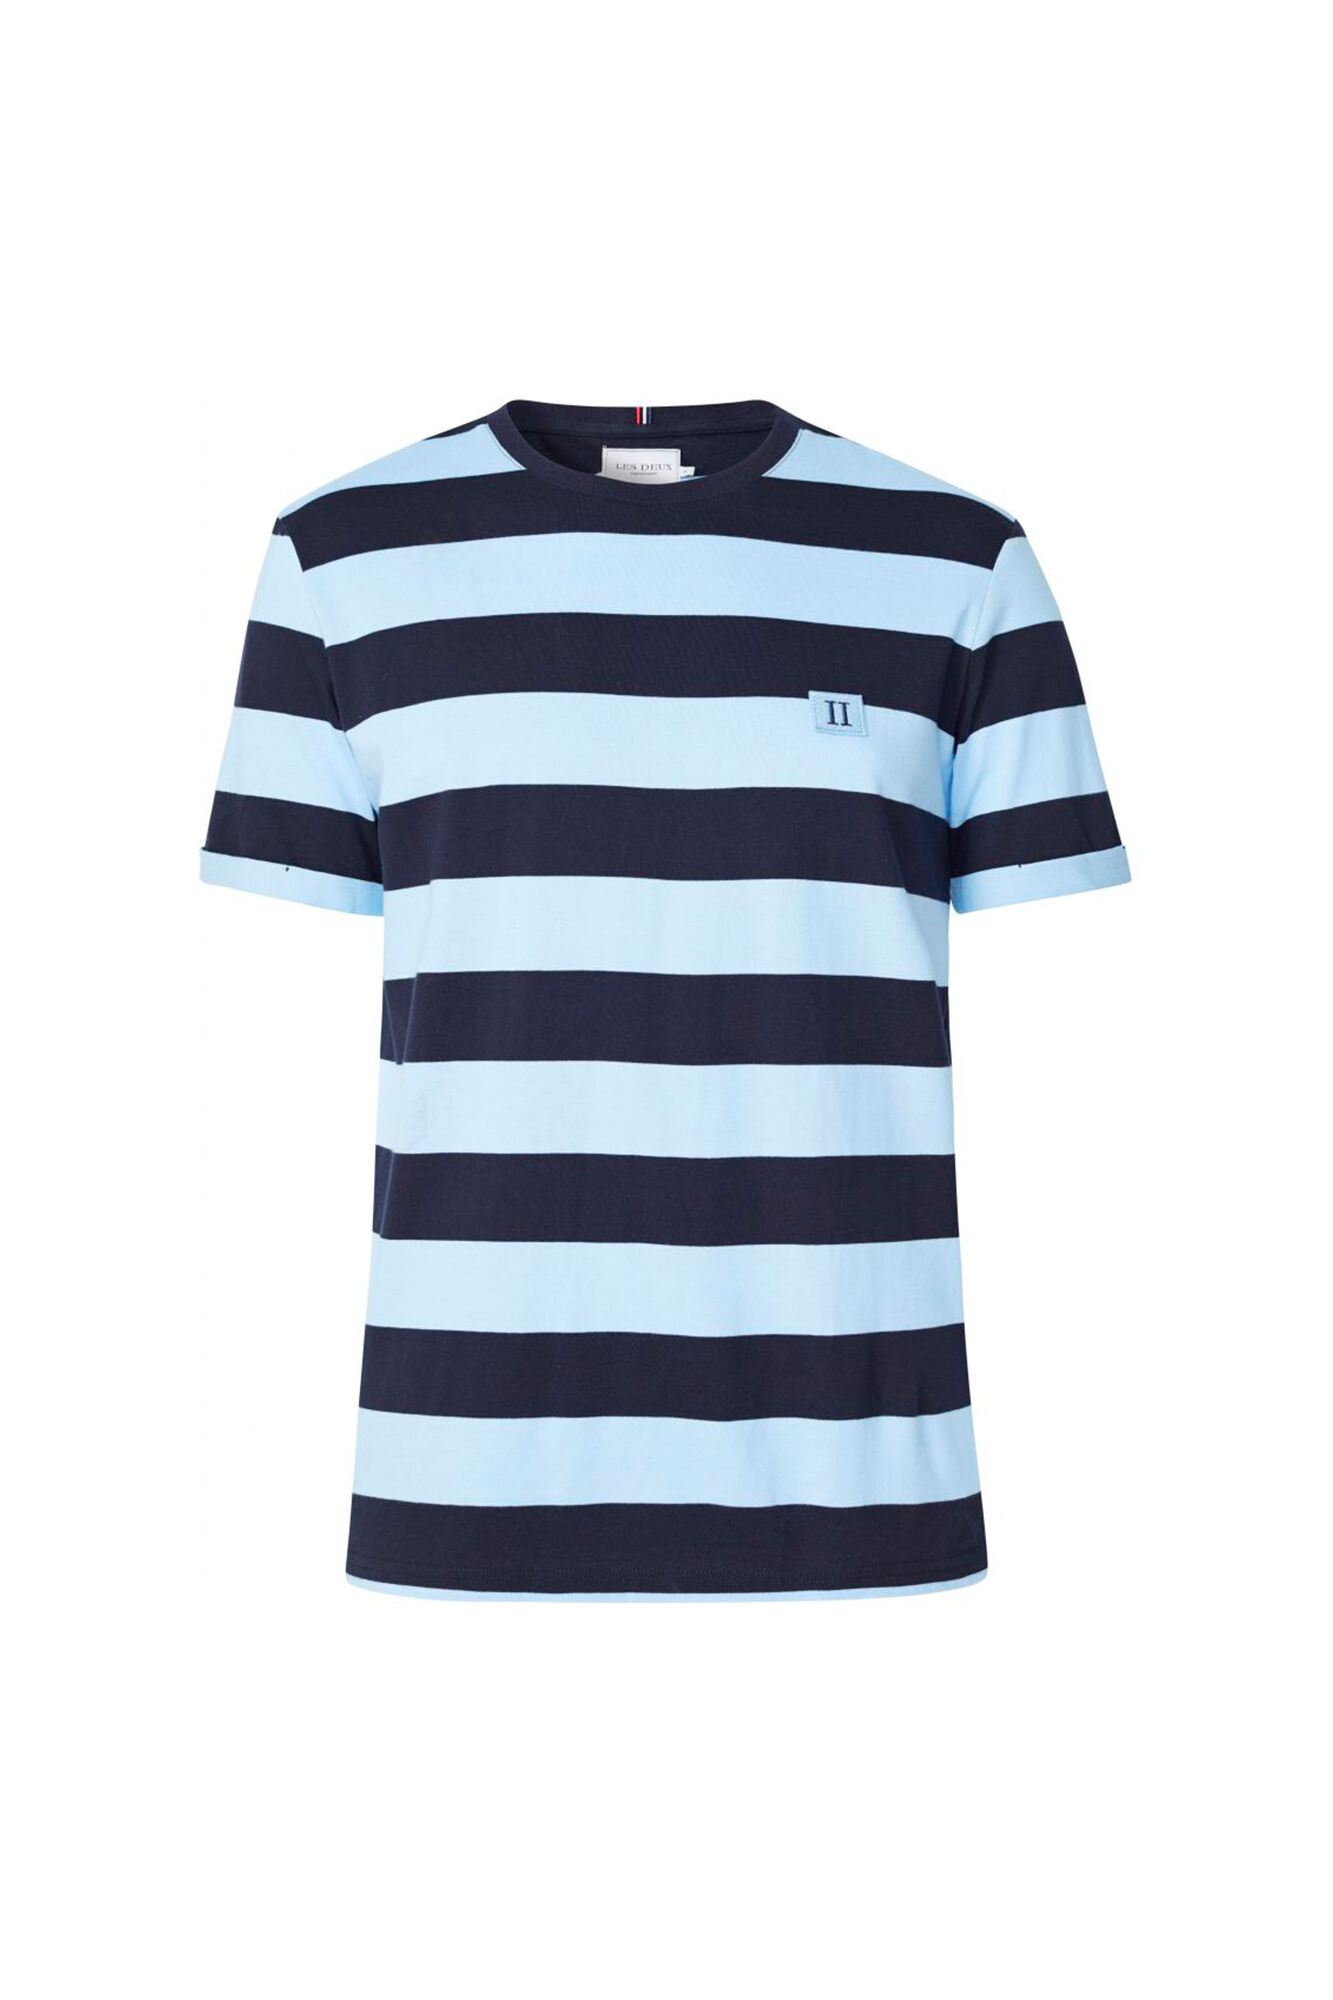 Levoir T-shirt LDM101032, PLACID BLUE/NAVY